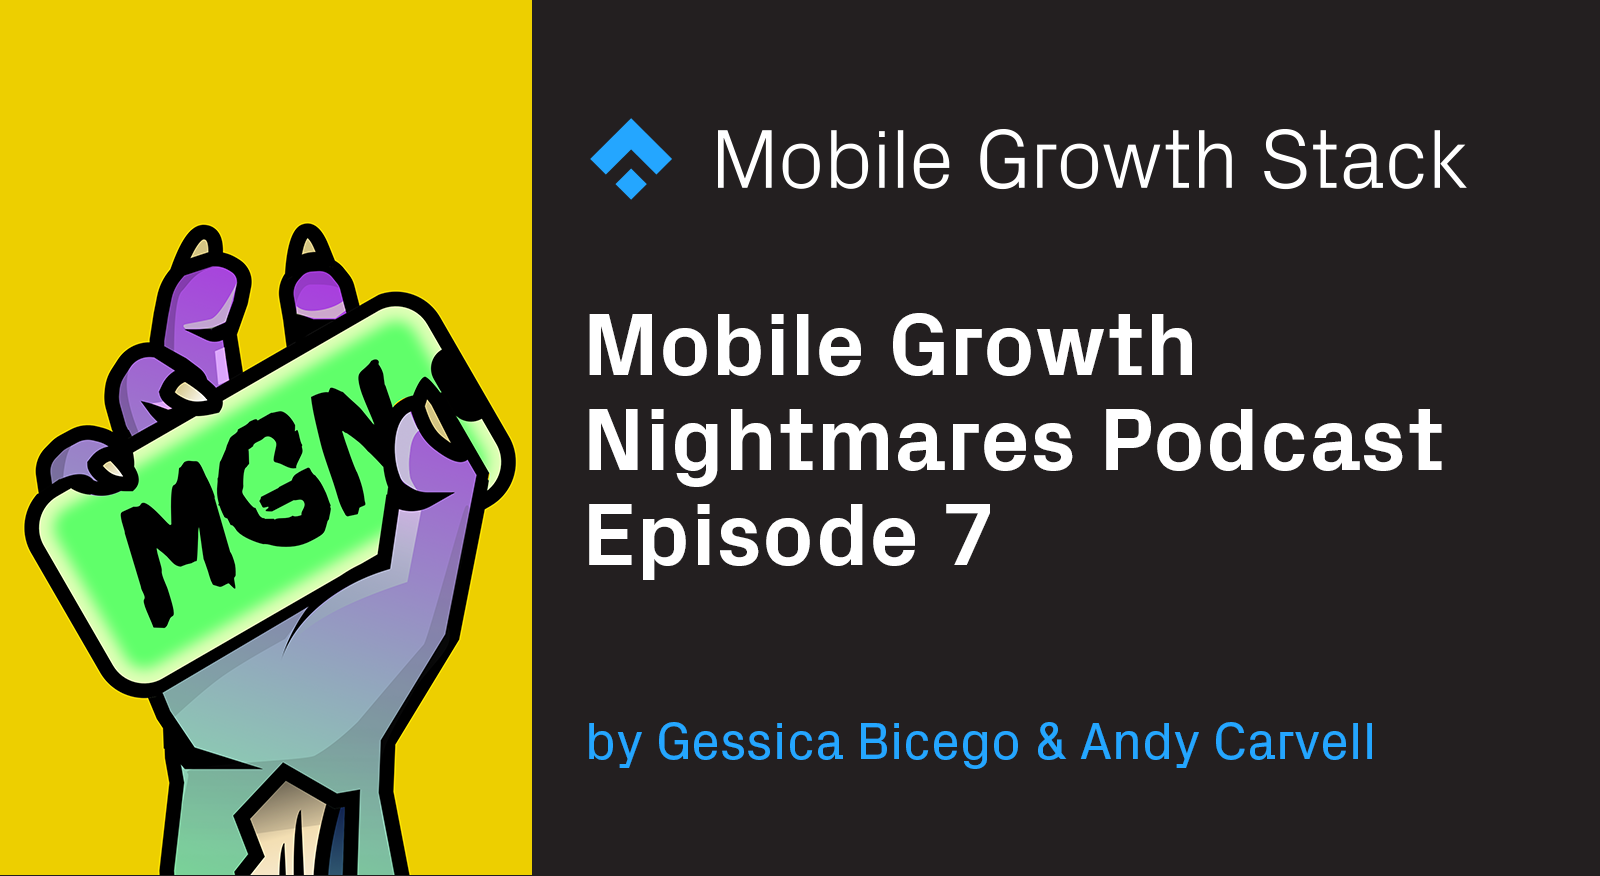 Mobile Growth Nightmares Episode 7 — Live recording at APS with Lenette Yap from Wargaming and Jacques Frisch from Glovo.